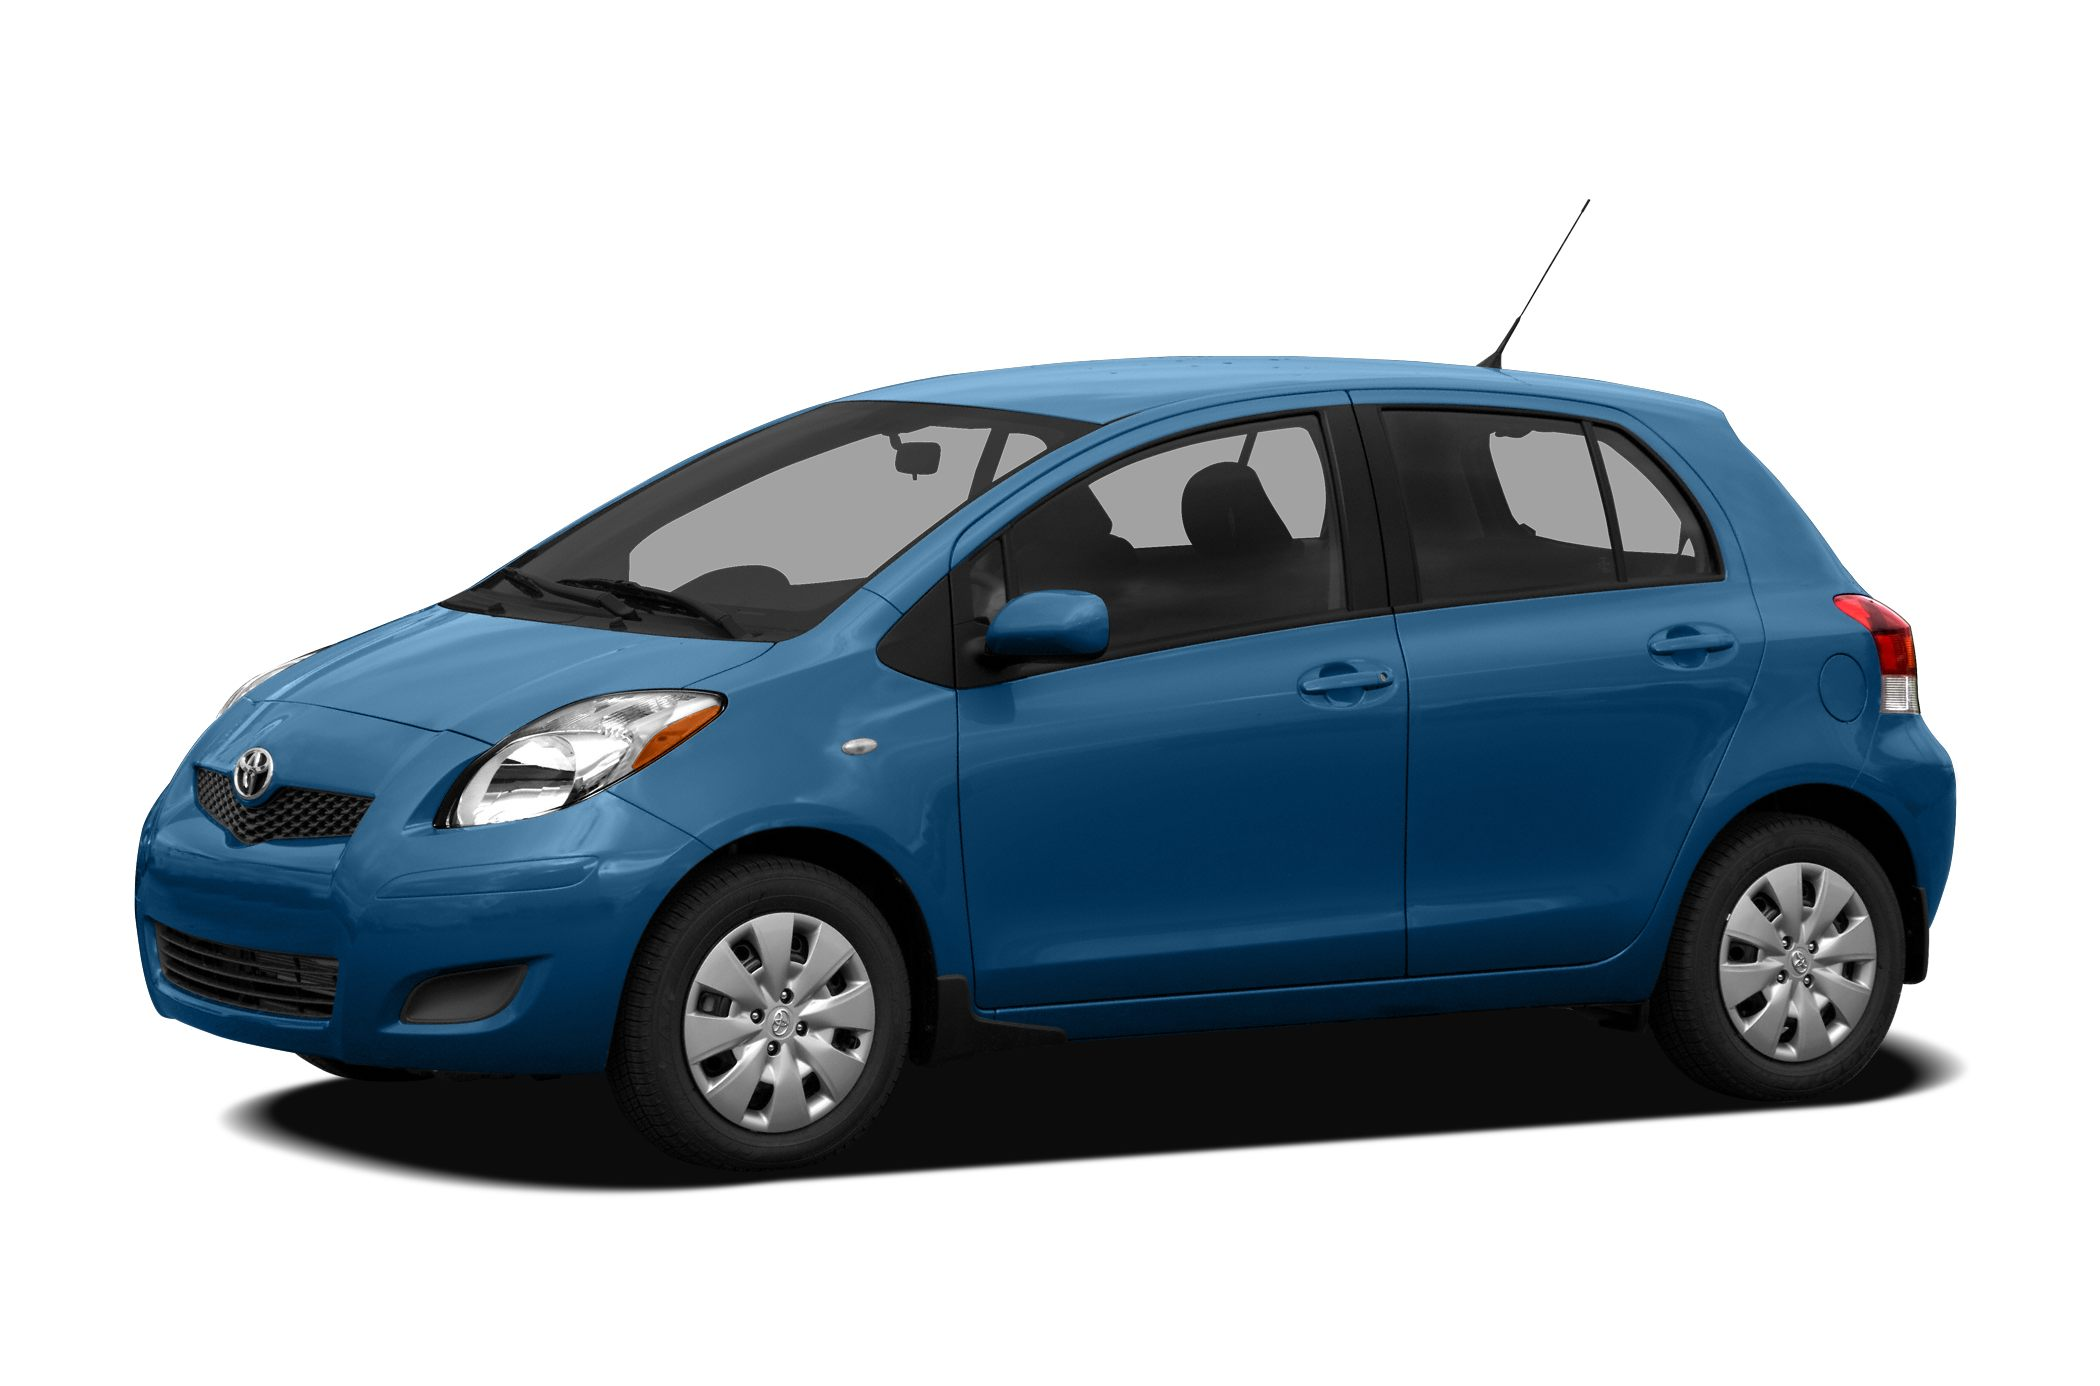 2011 Toyota Yaris Base Prices are PLUS tax tag title fee 799 Pre-Delivery Service Fee and 1